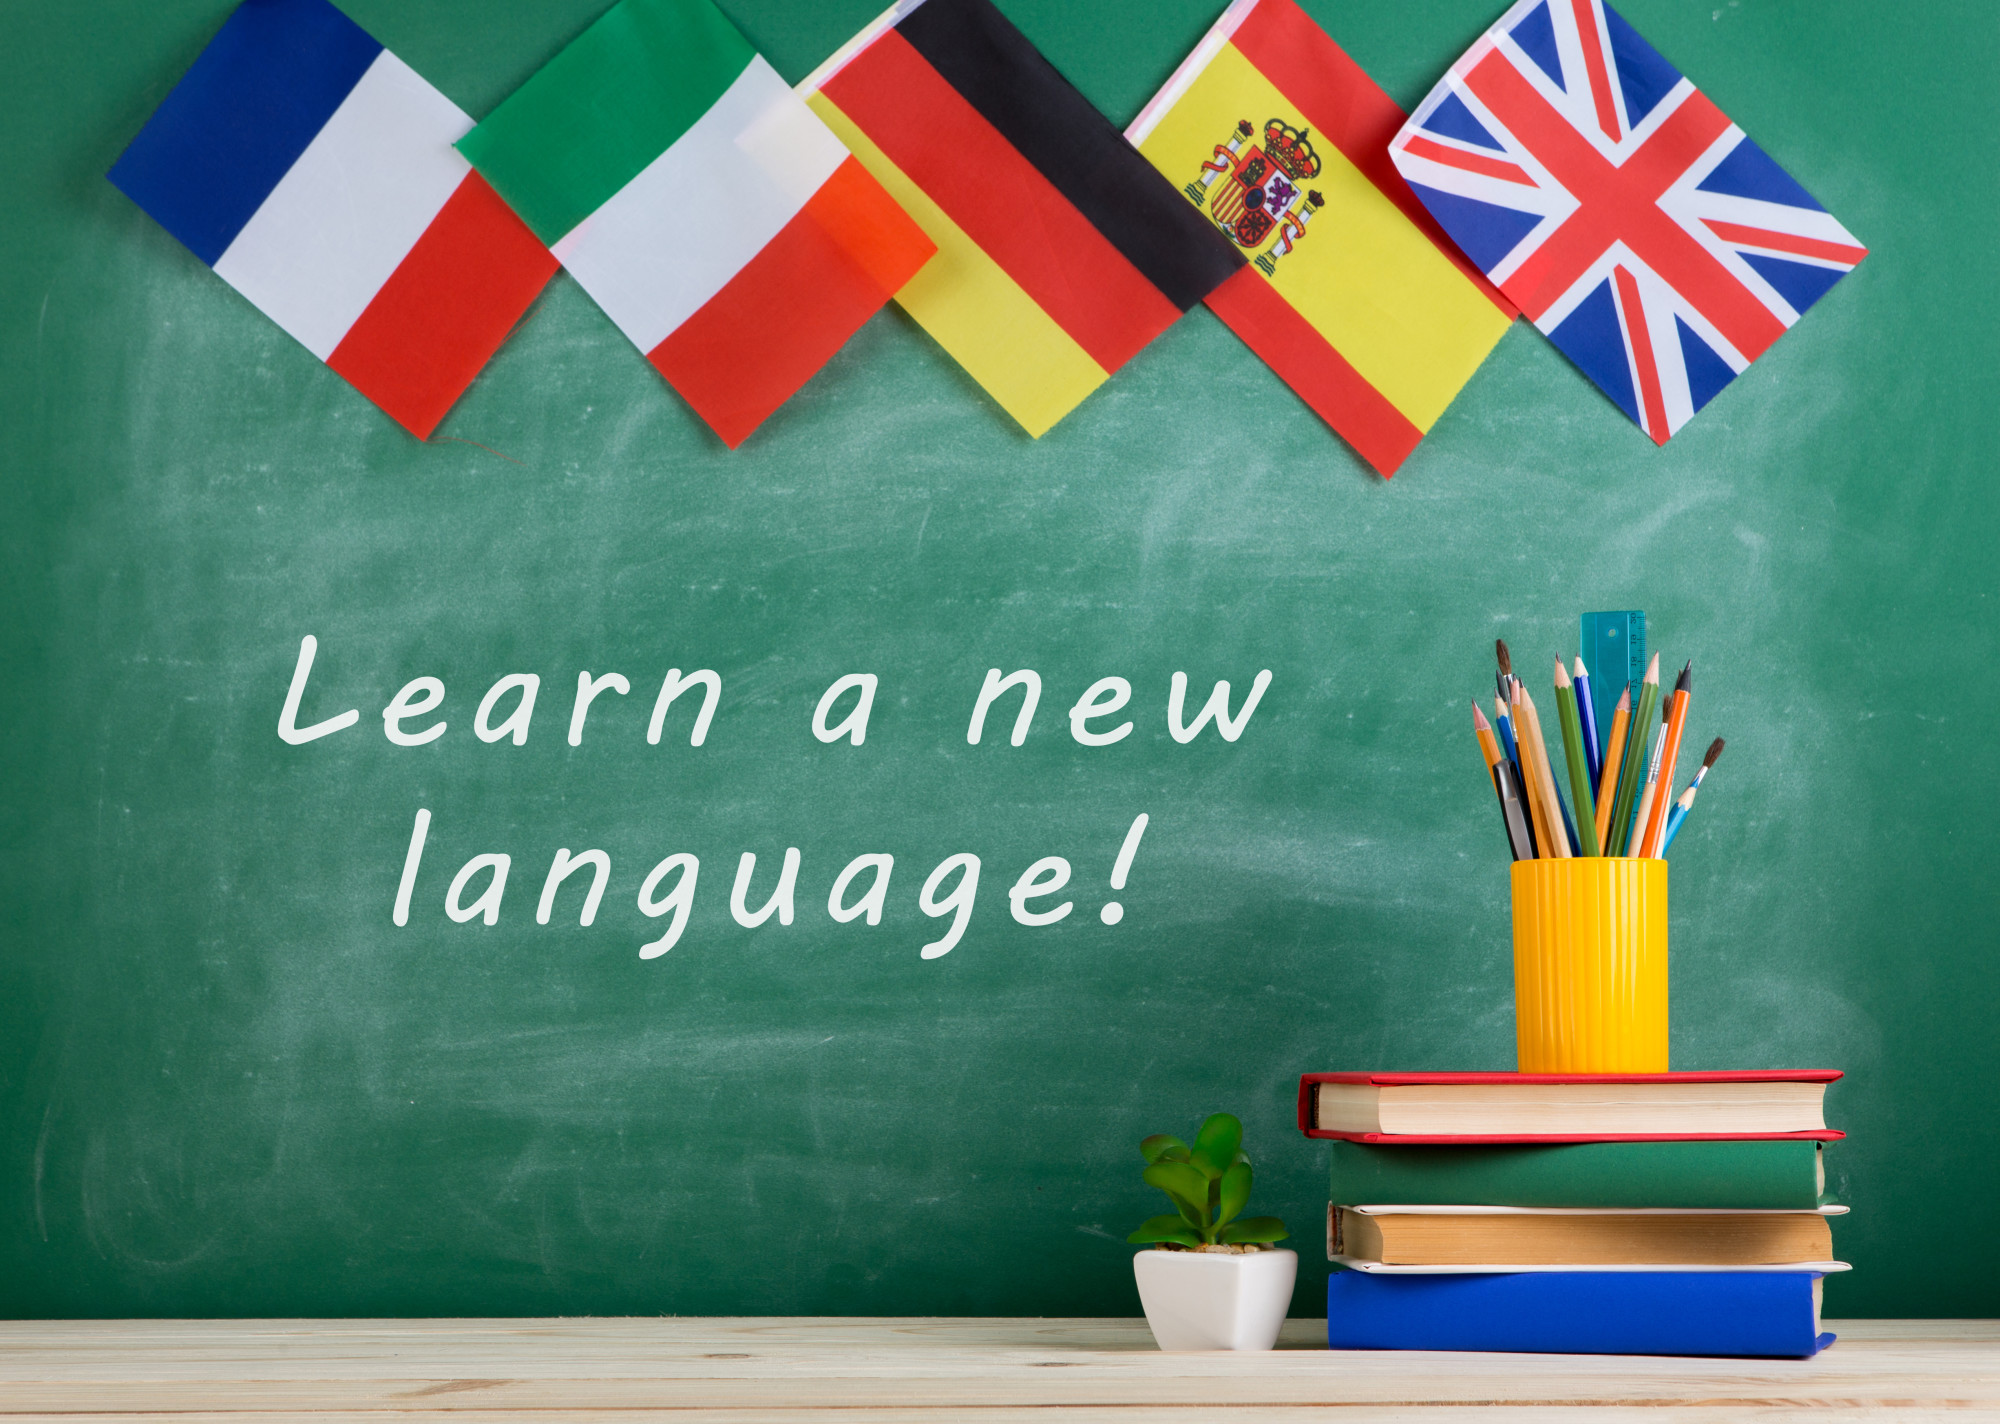 Learning a New Language Visualized by Flags, Books, and School Supplies